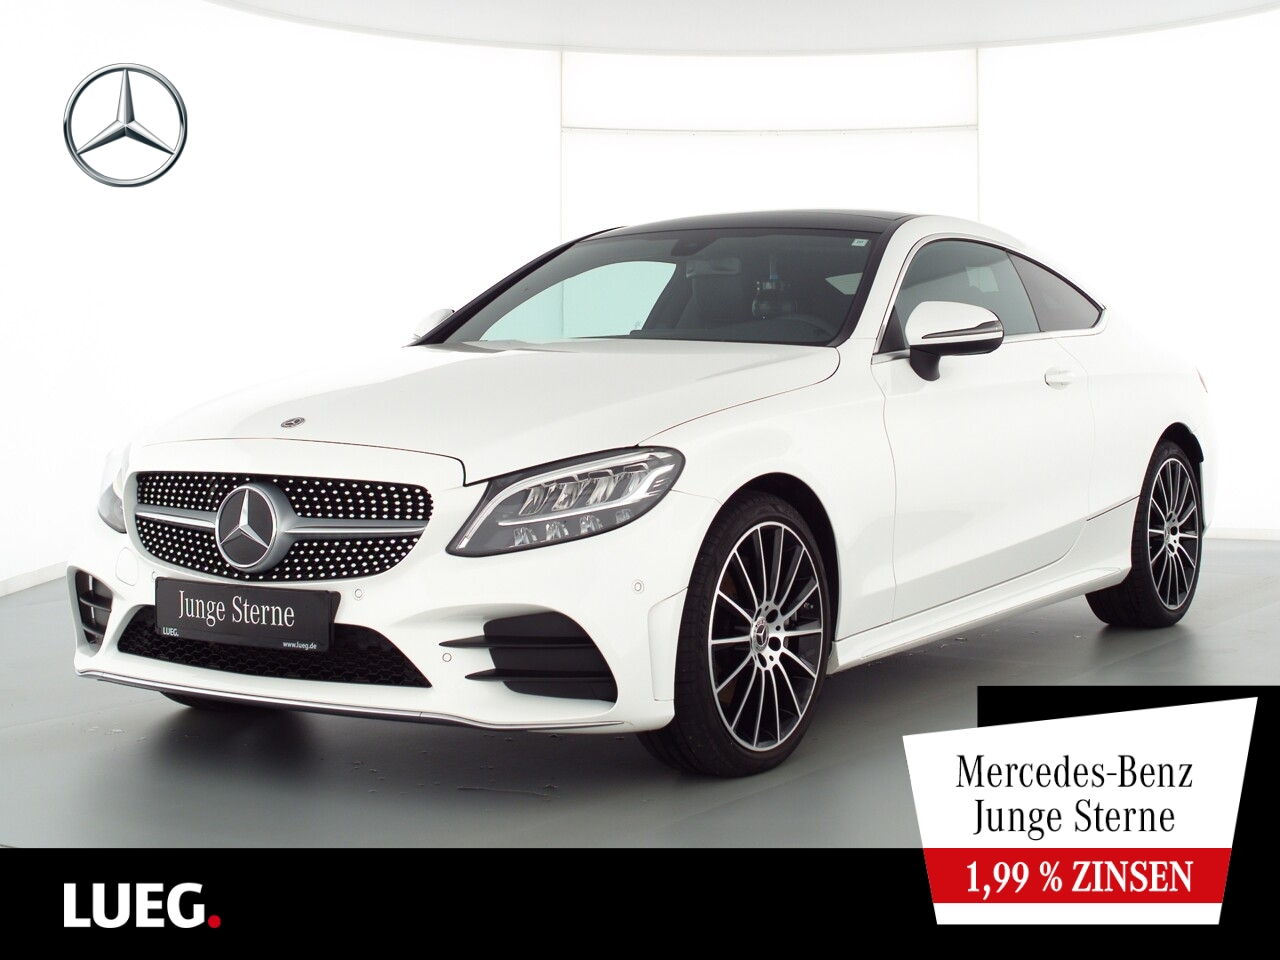 Mercedes-Benz C 180 Coupé AMG+Navi+Pano+LED-HP+19''+ParkAss+RF, Jahr 2019, Benzin